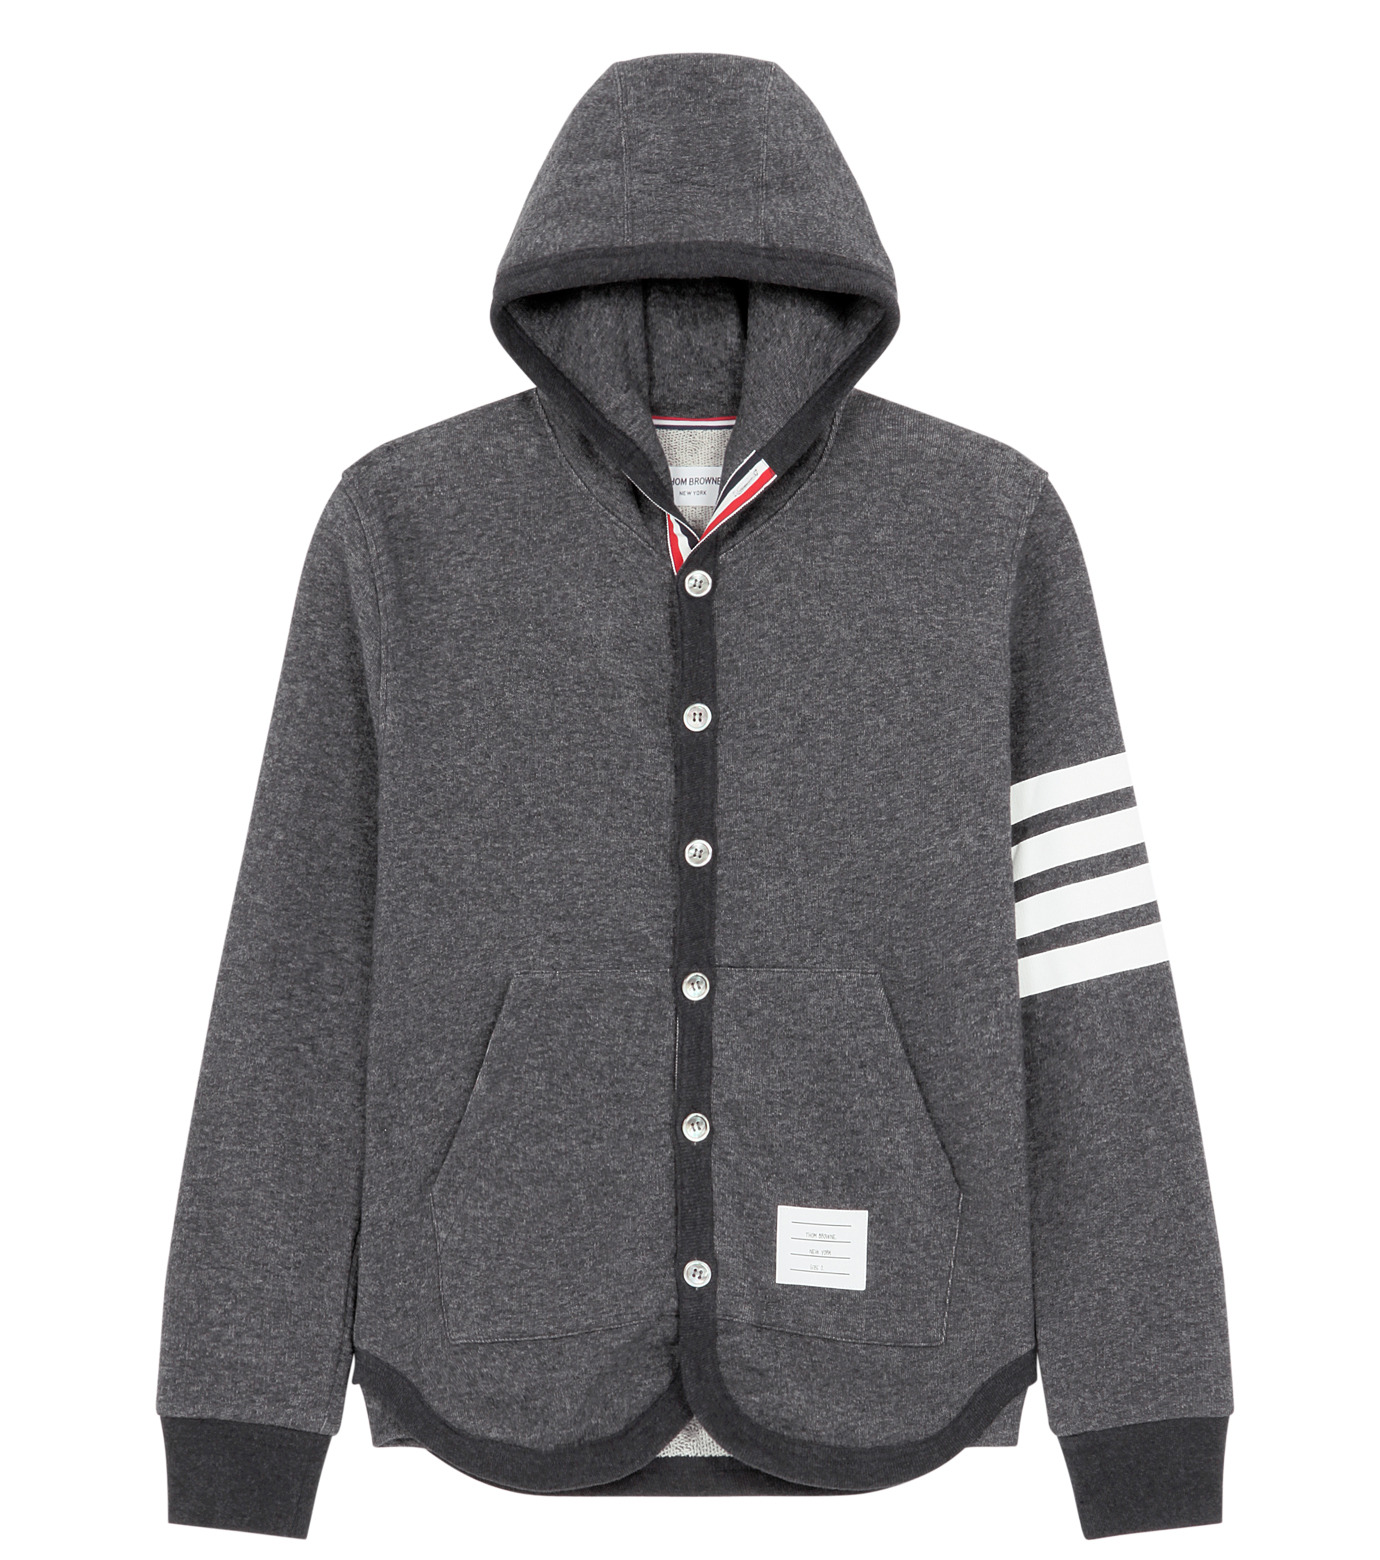 Thom Browne(トムブラウン)のButton up hoodie-GRAY-MJT003A5139-11 拡大詳細画像1